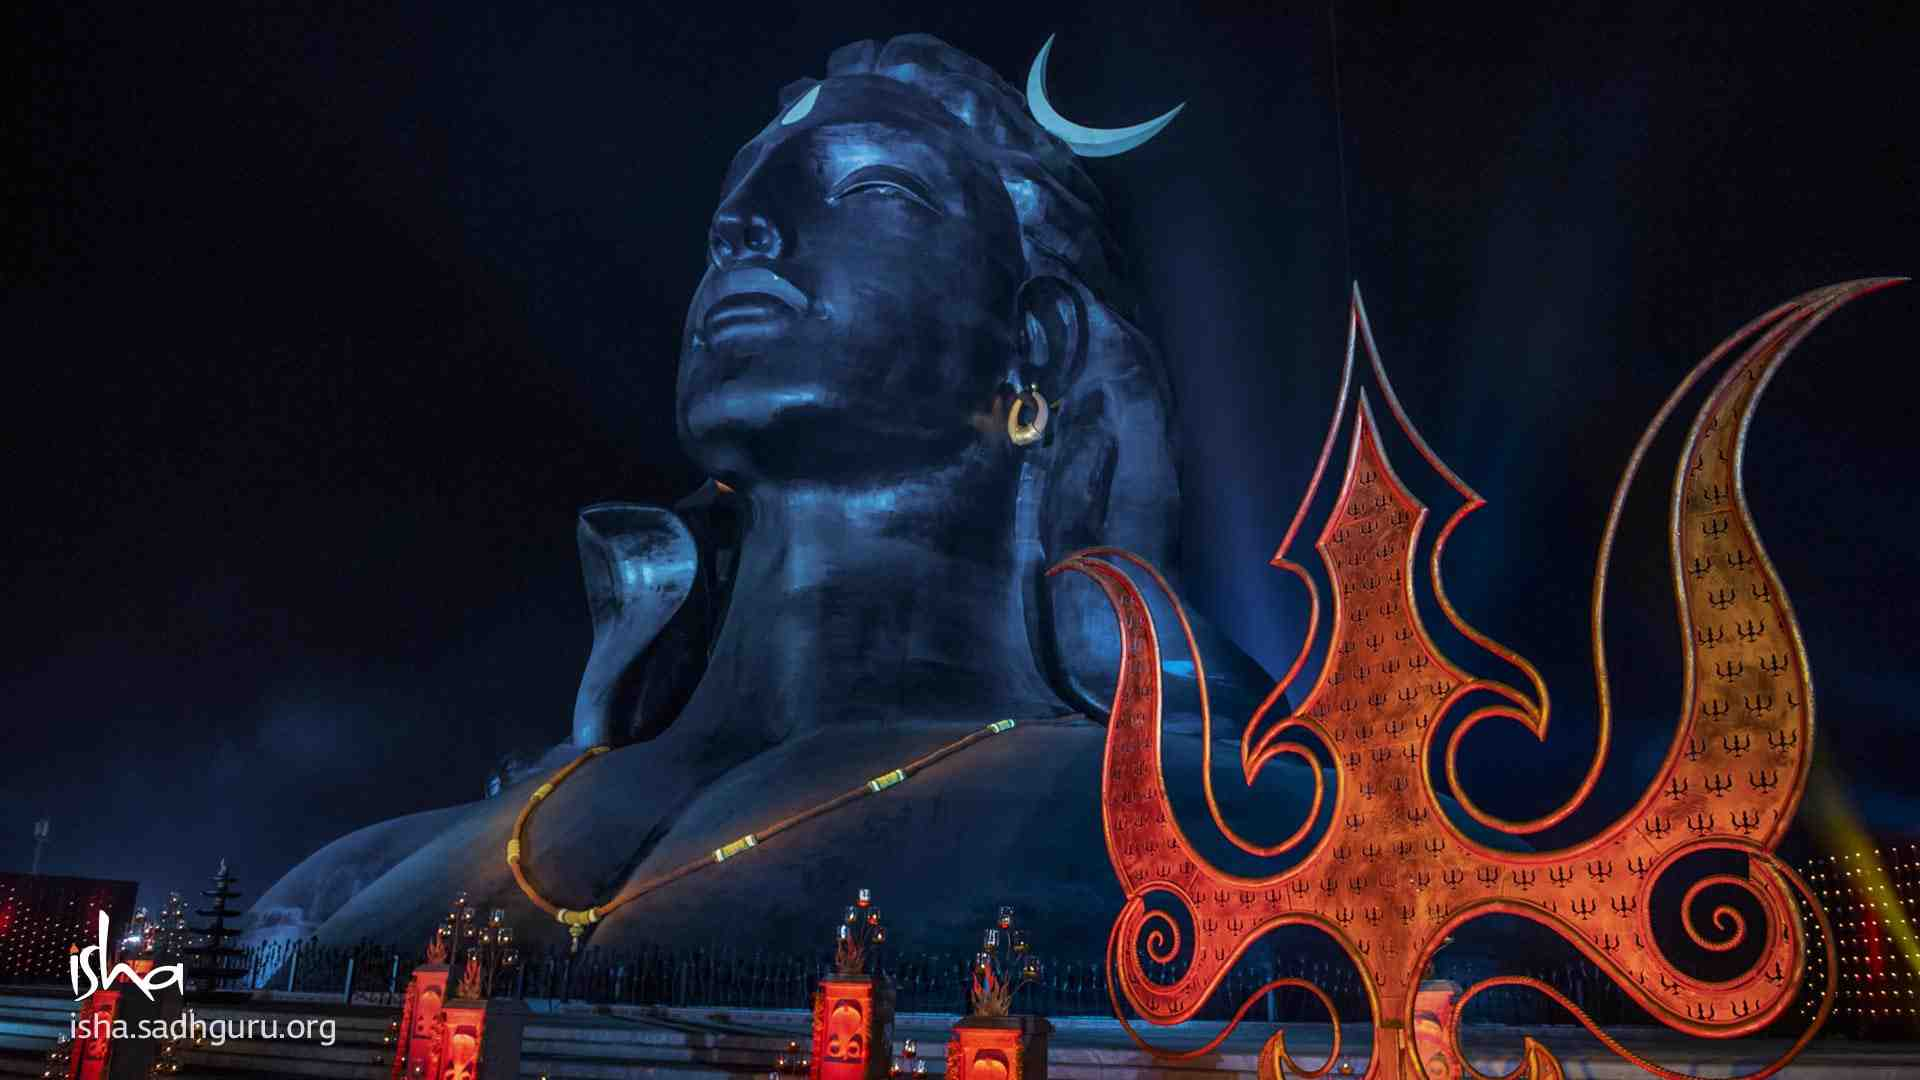 Shiva Wallpaper with his Trishul on Mahashivratri